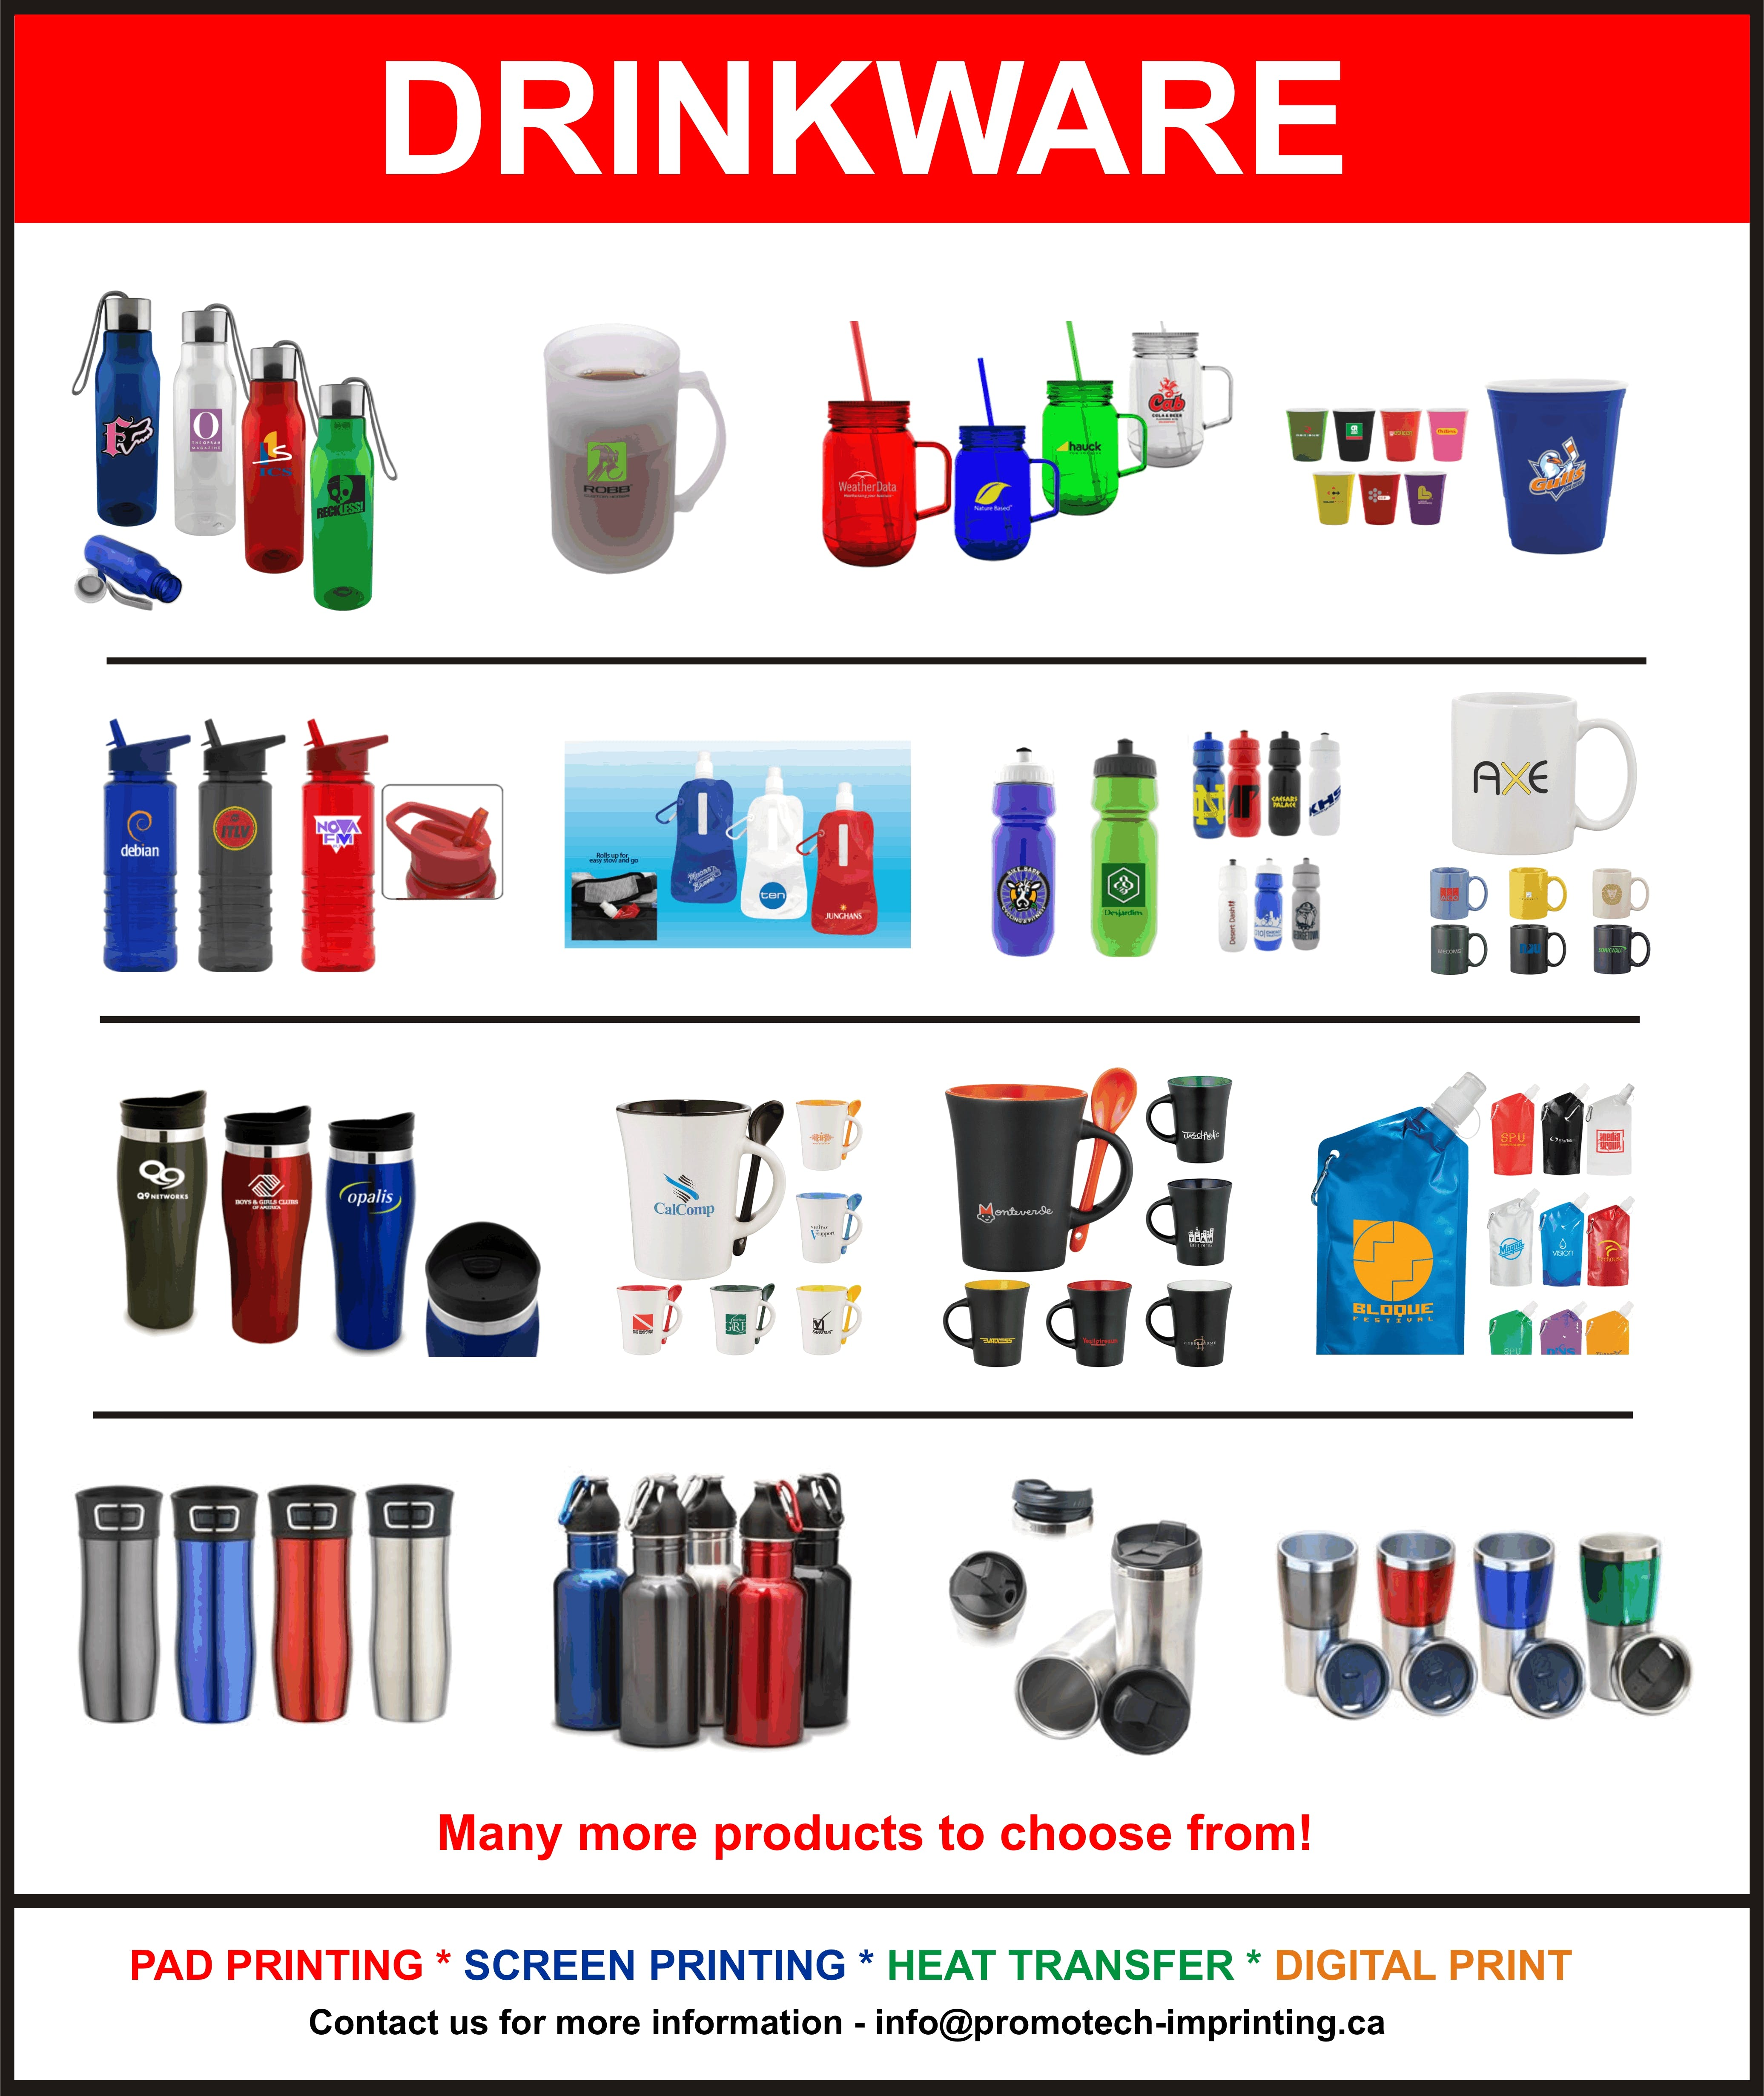 DRINKWARE Promotional token sold by PromoTech Custom Imprinting